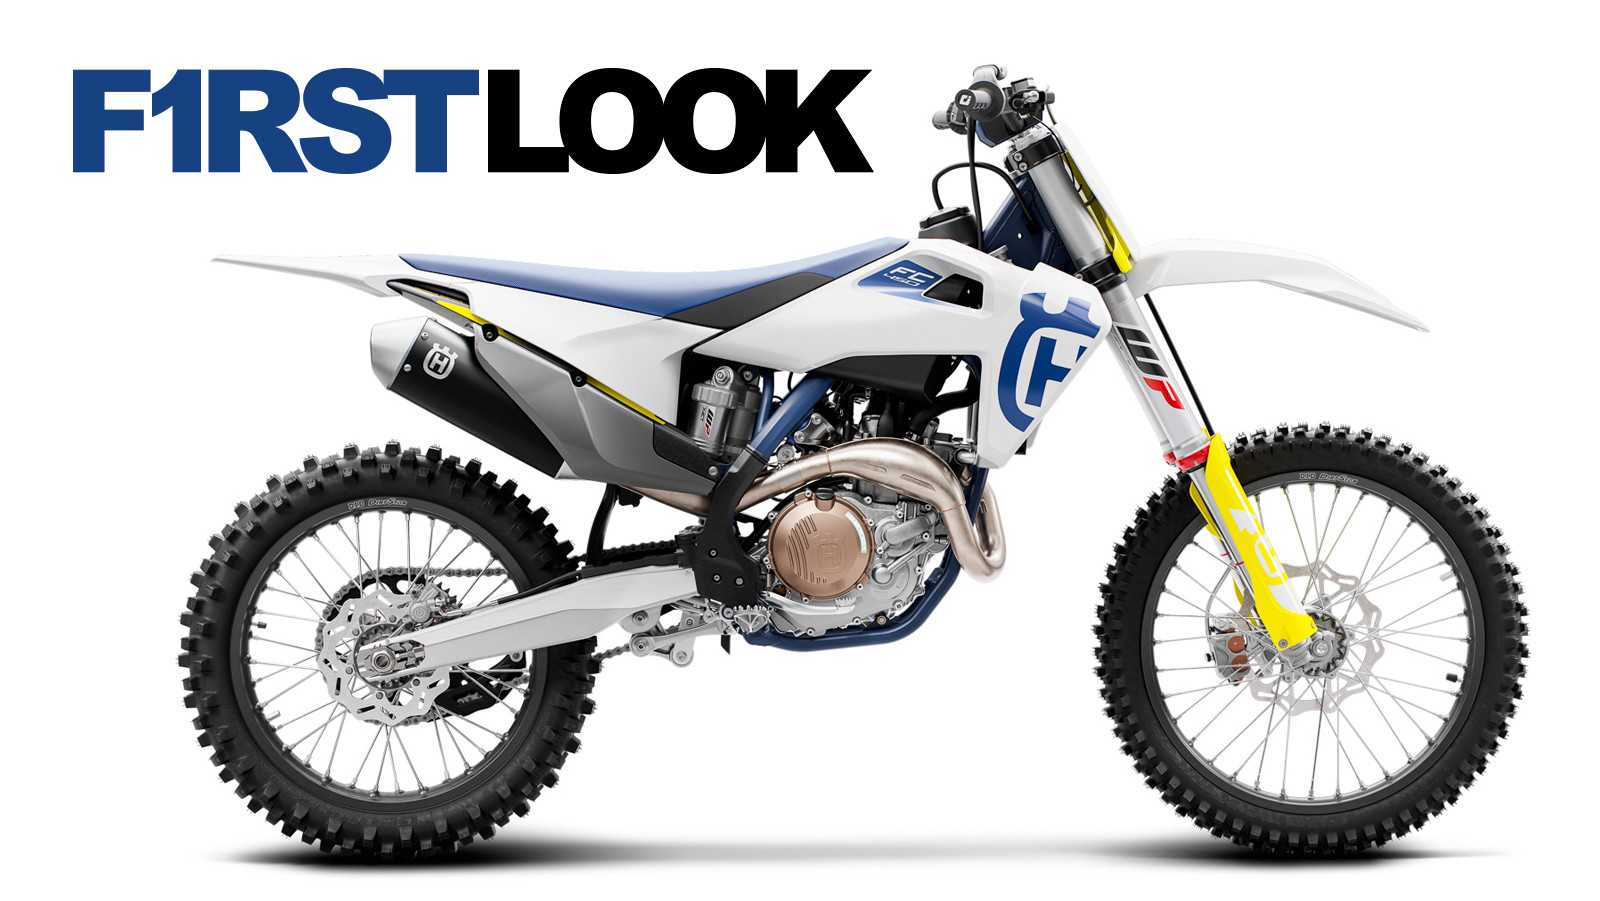 First Look: 2020 Husqvarna Motocross and Cross-Country Bikes